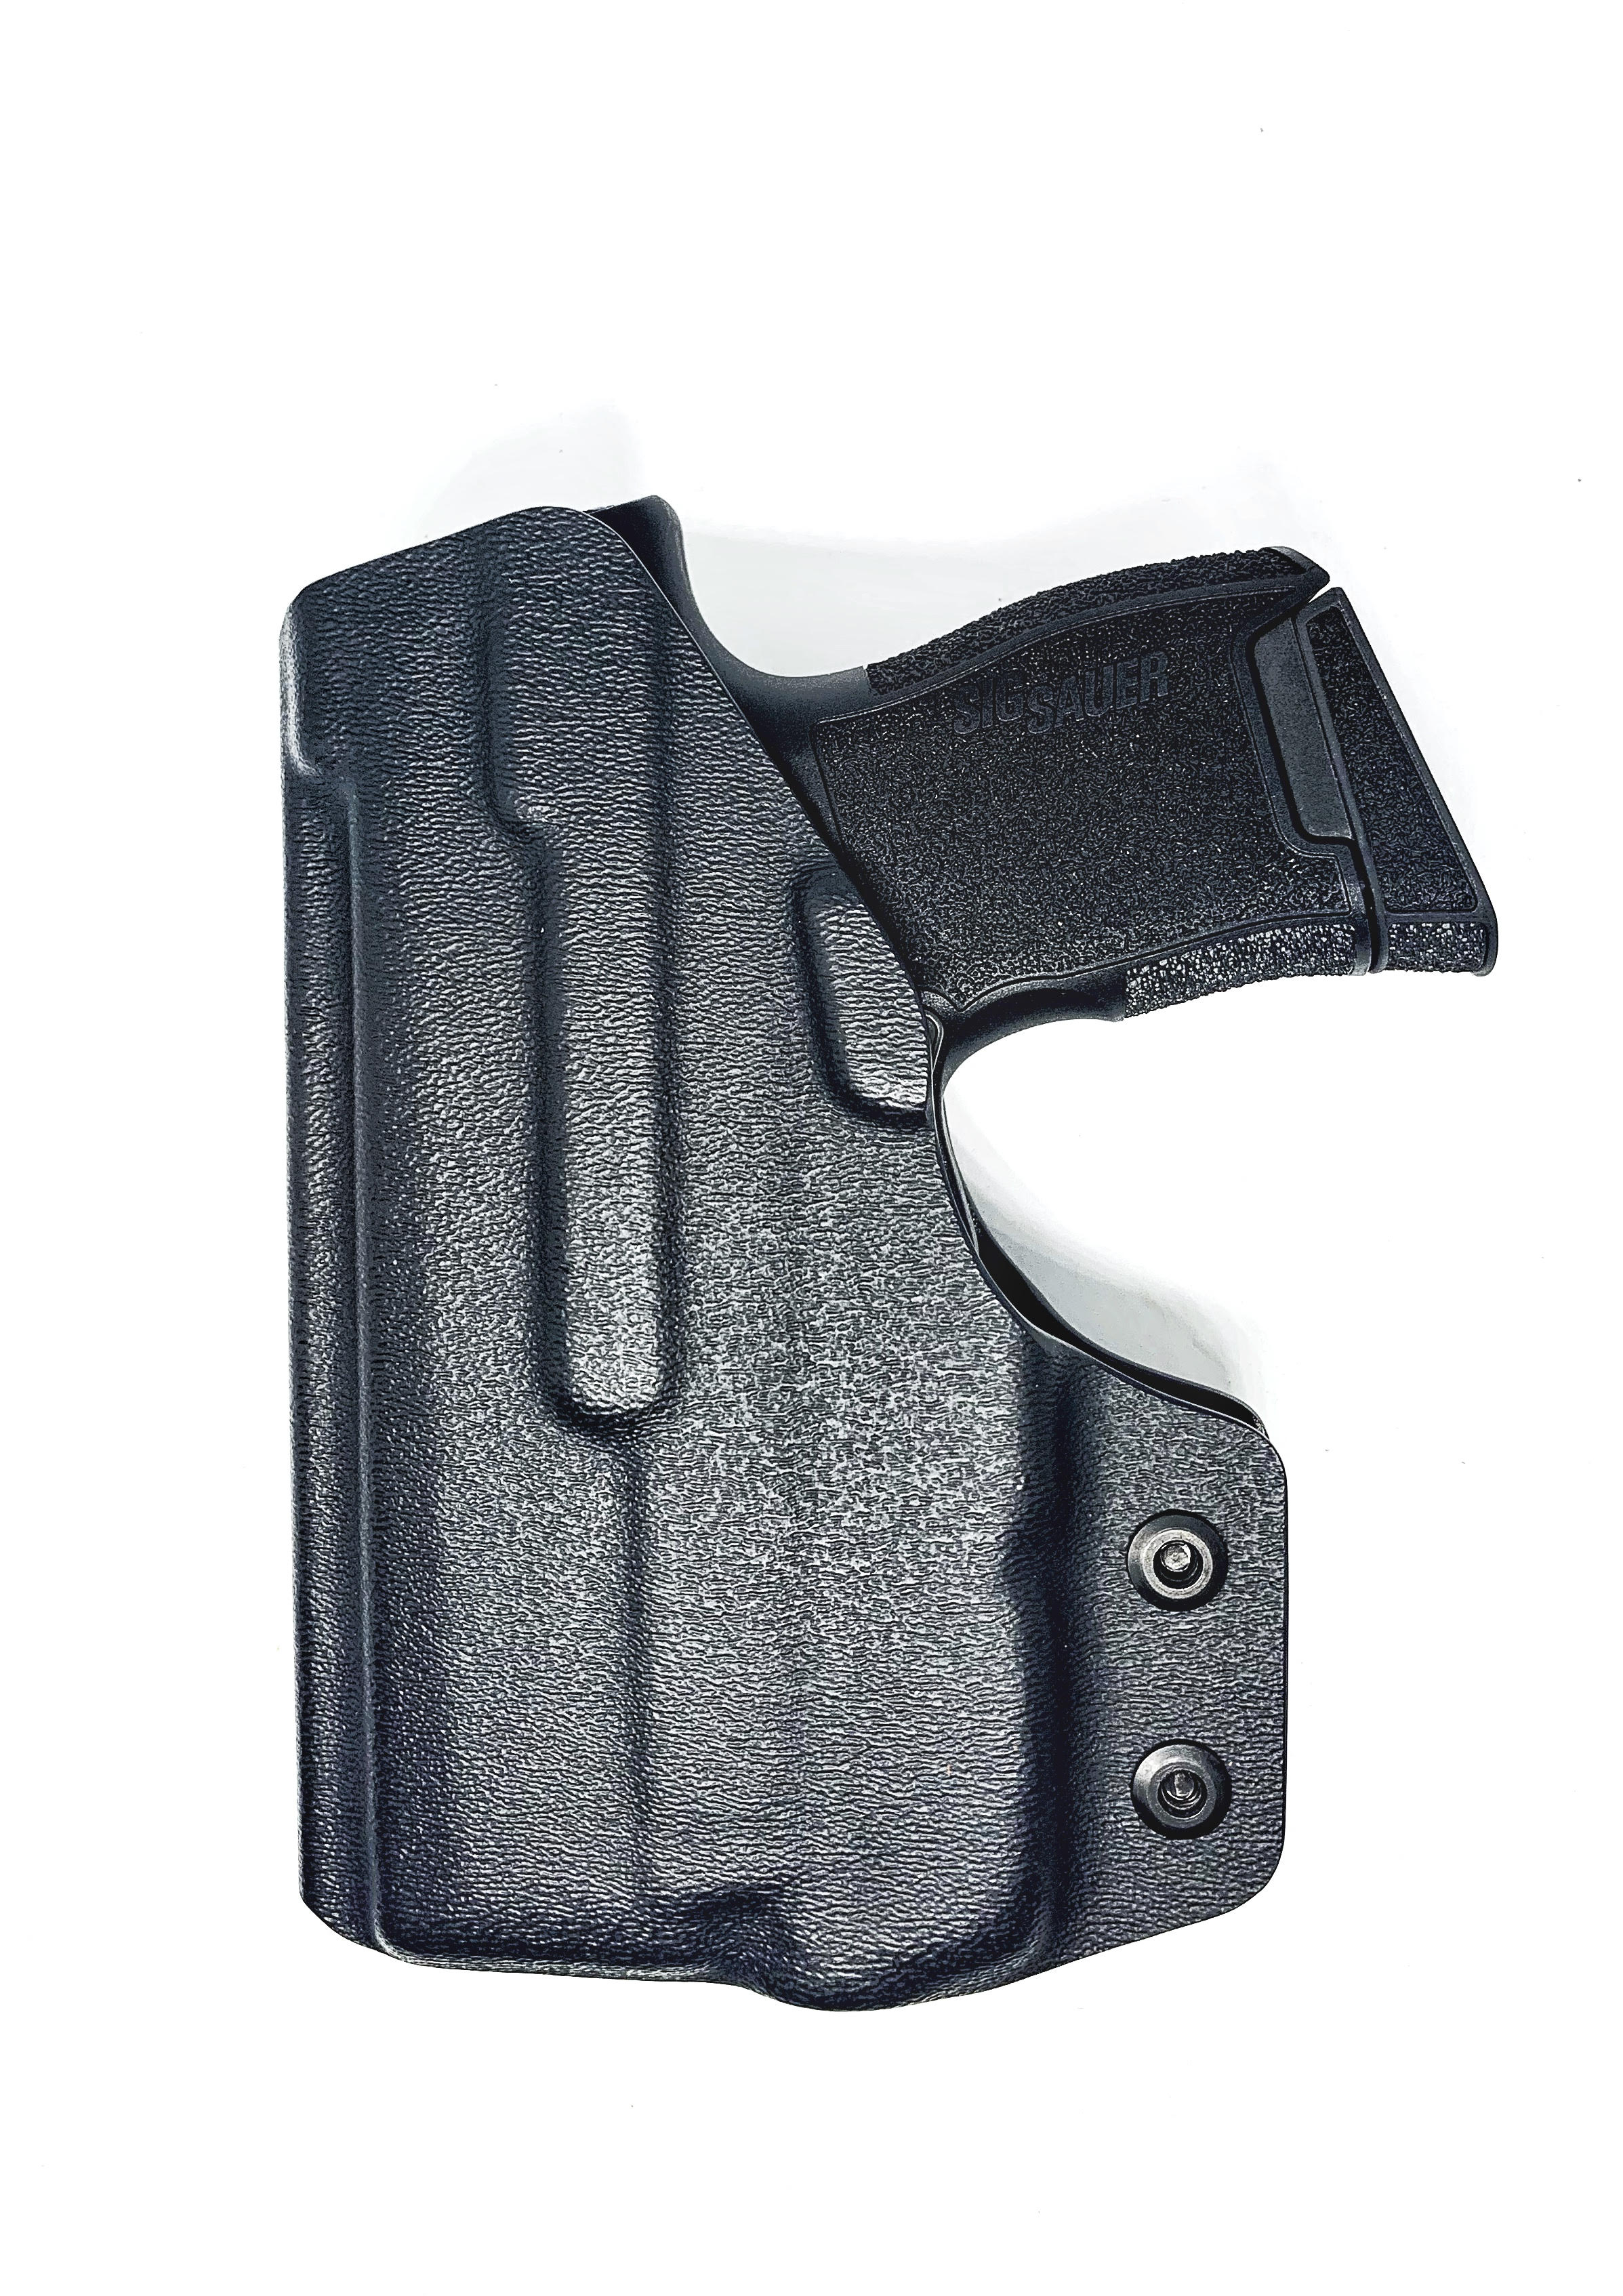 Holster Options for the P365, P365 XL & TLR-6 - DARA